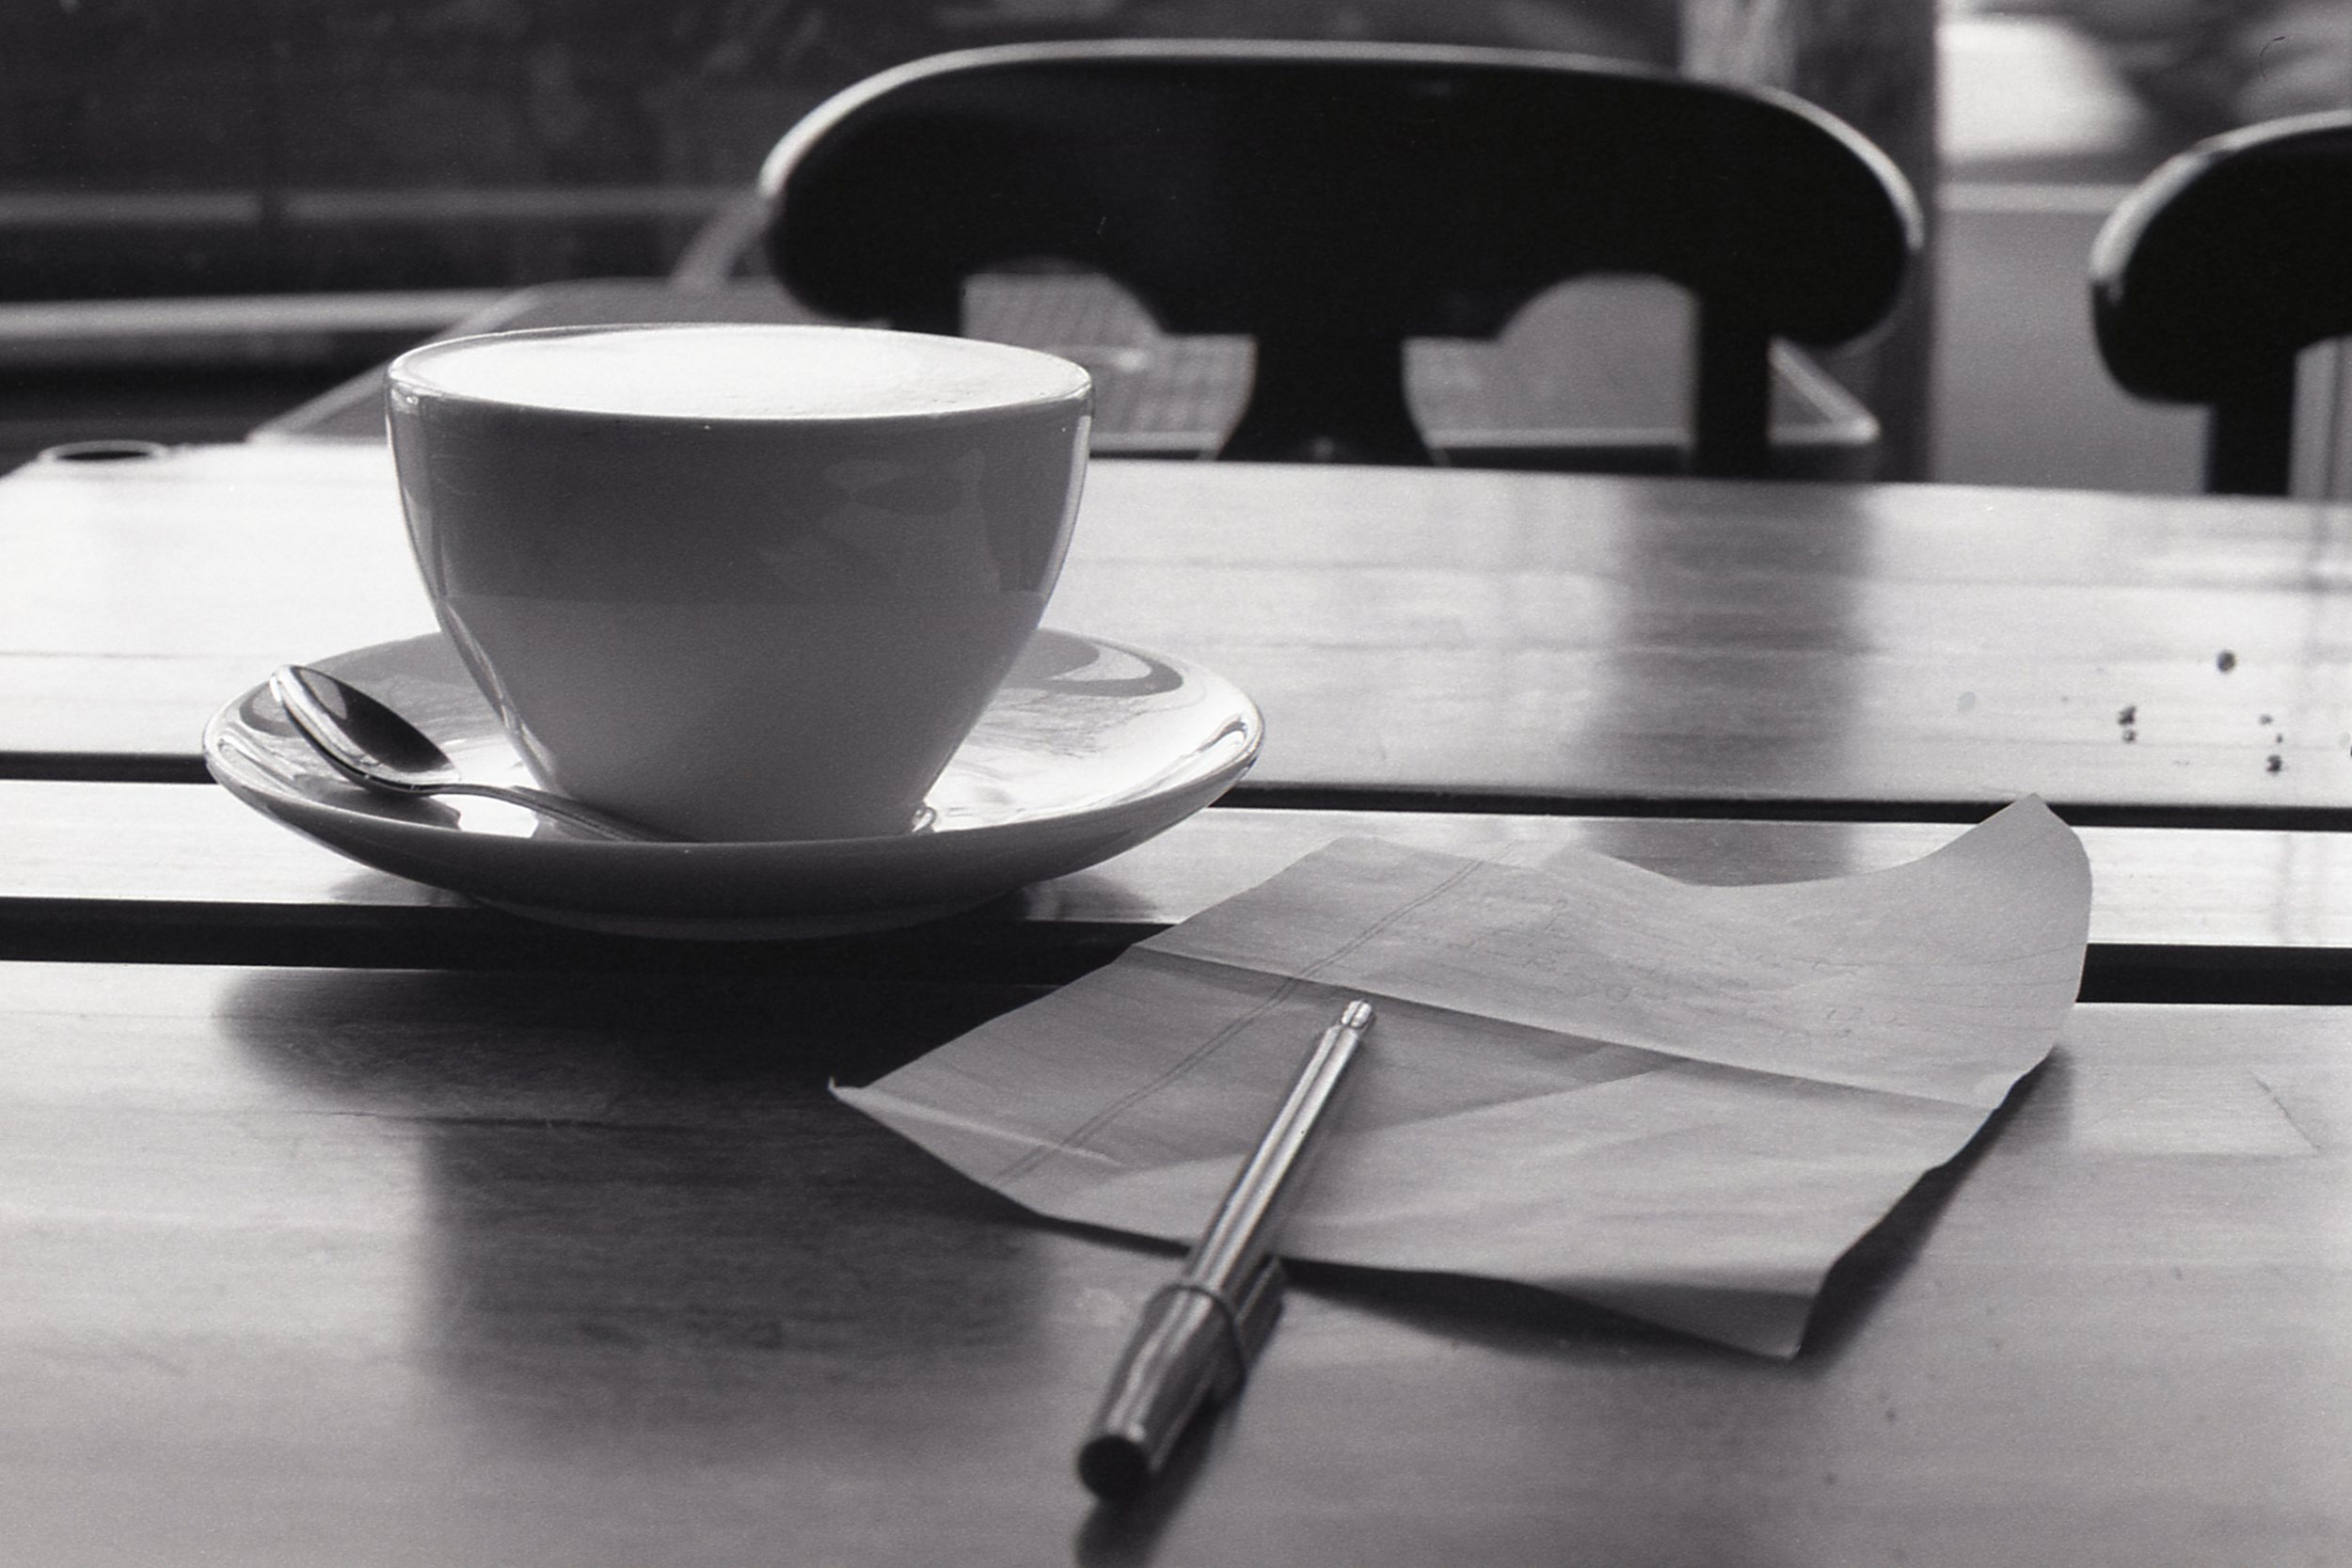 A mocha, pen, and a note. Timeless Coffee, Piedmont Ave, Oakland.